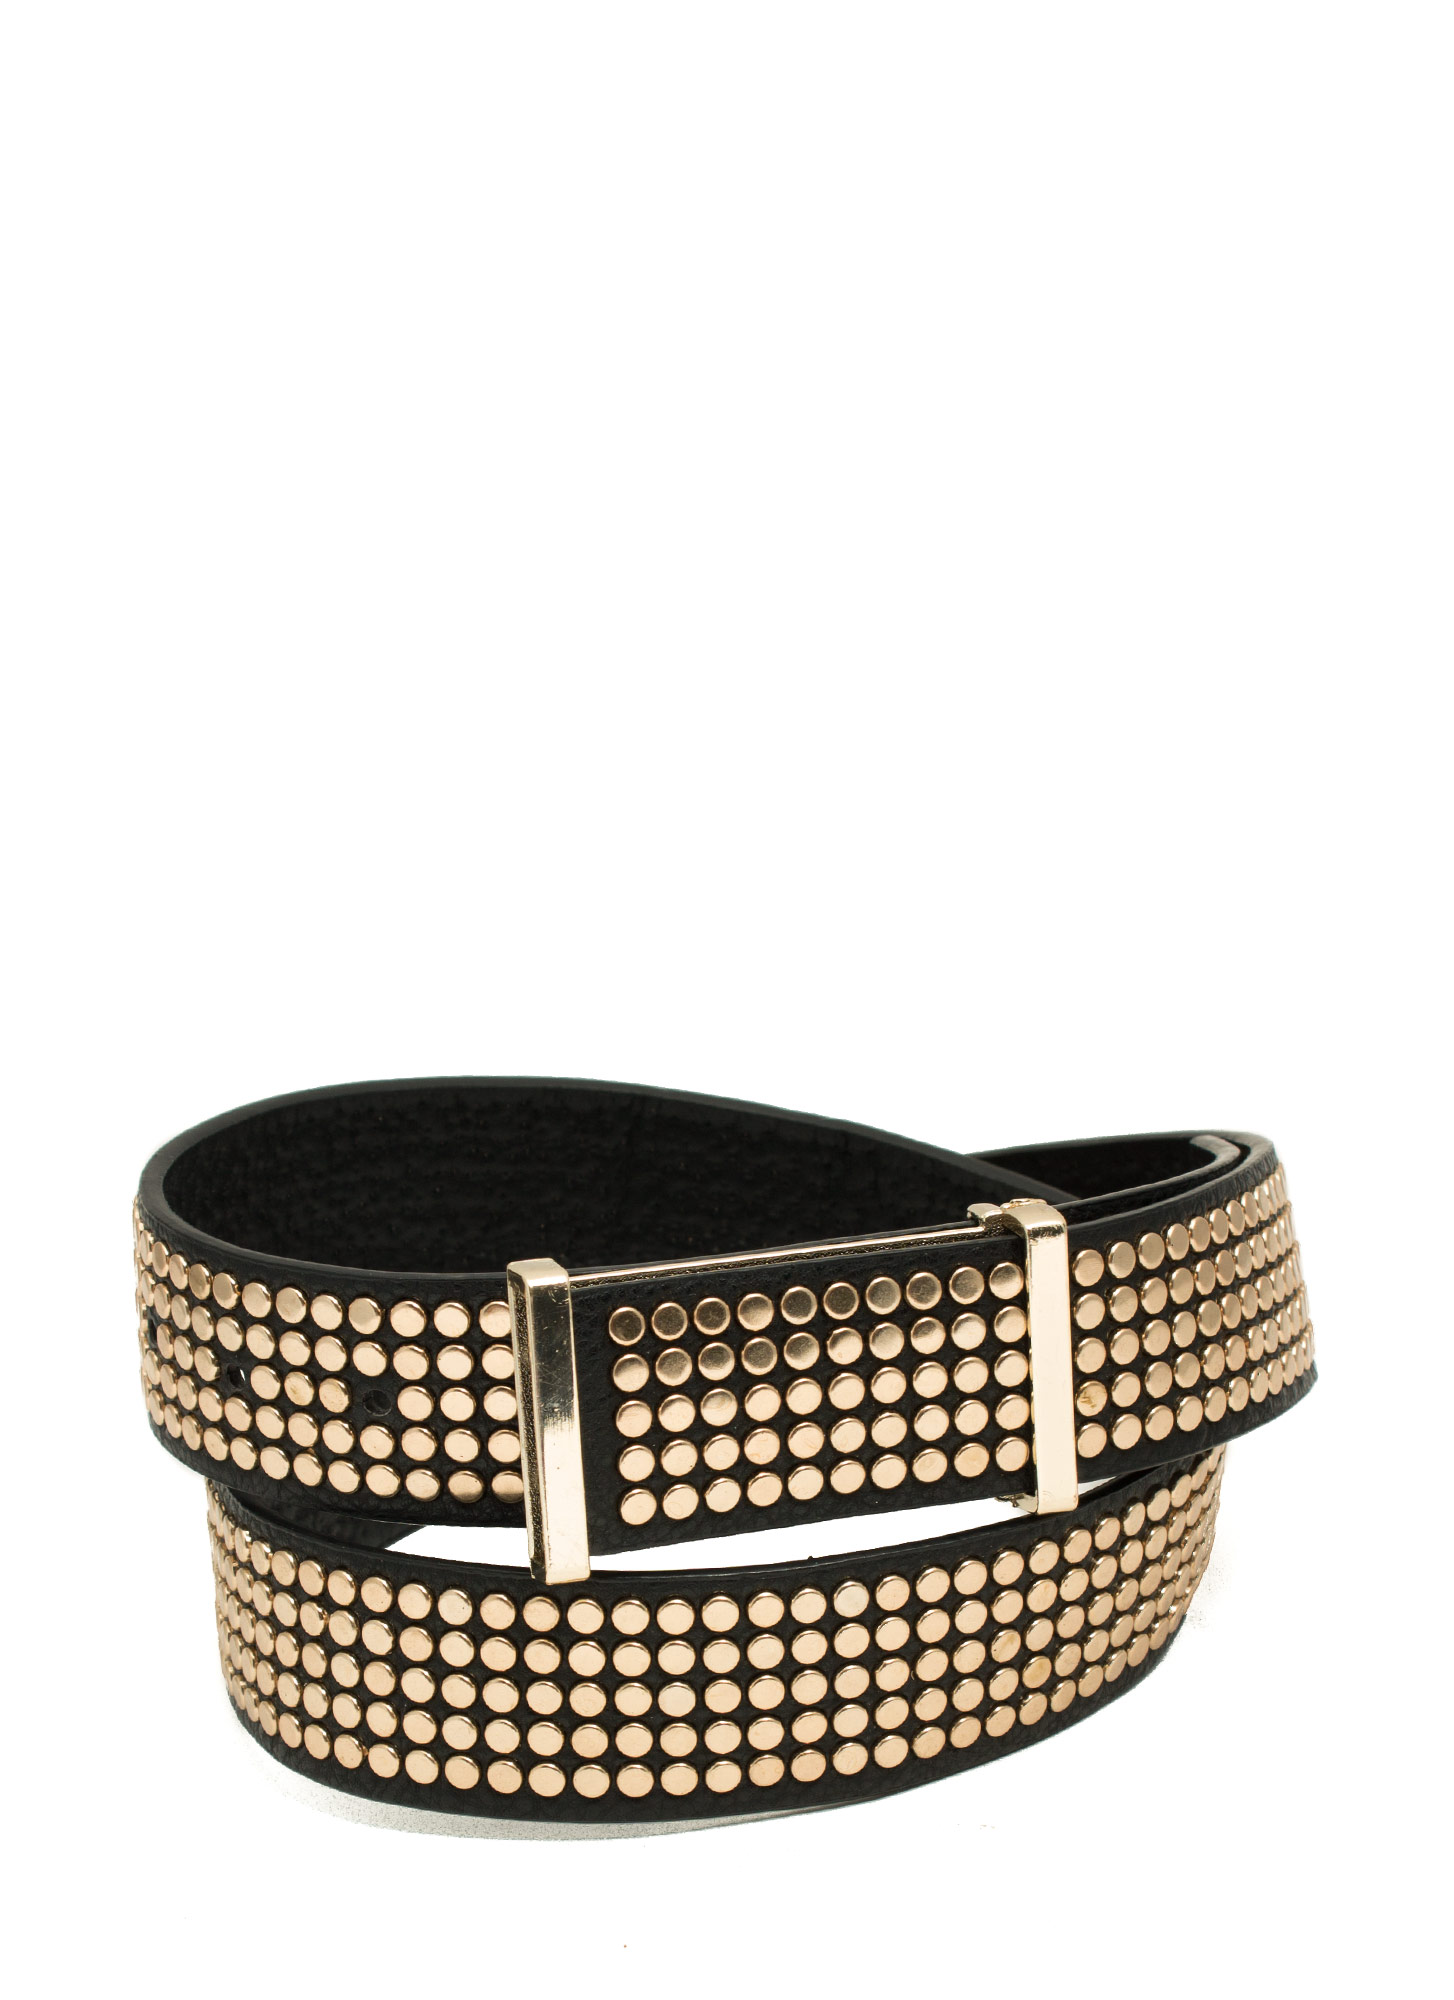 Disc Studded Belt BLACKGOLD